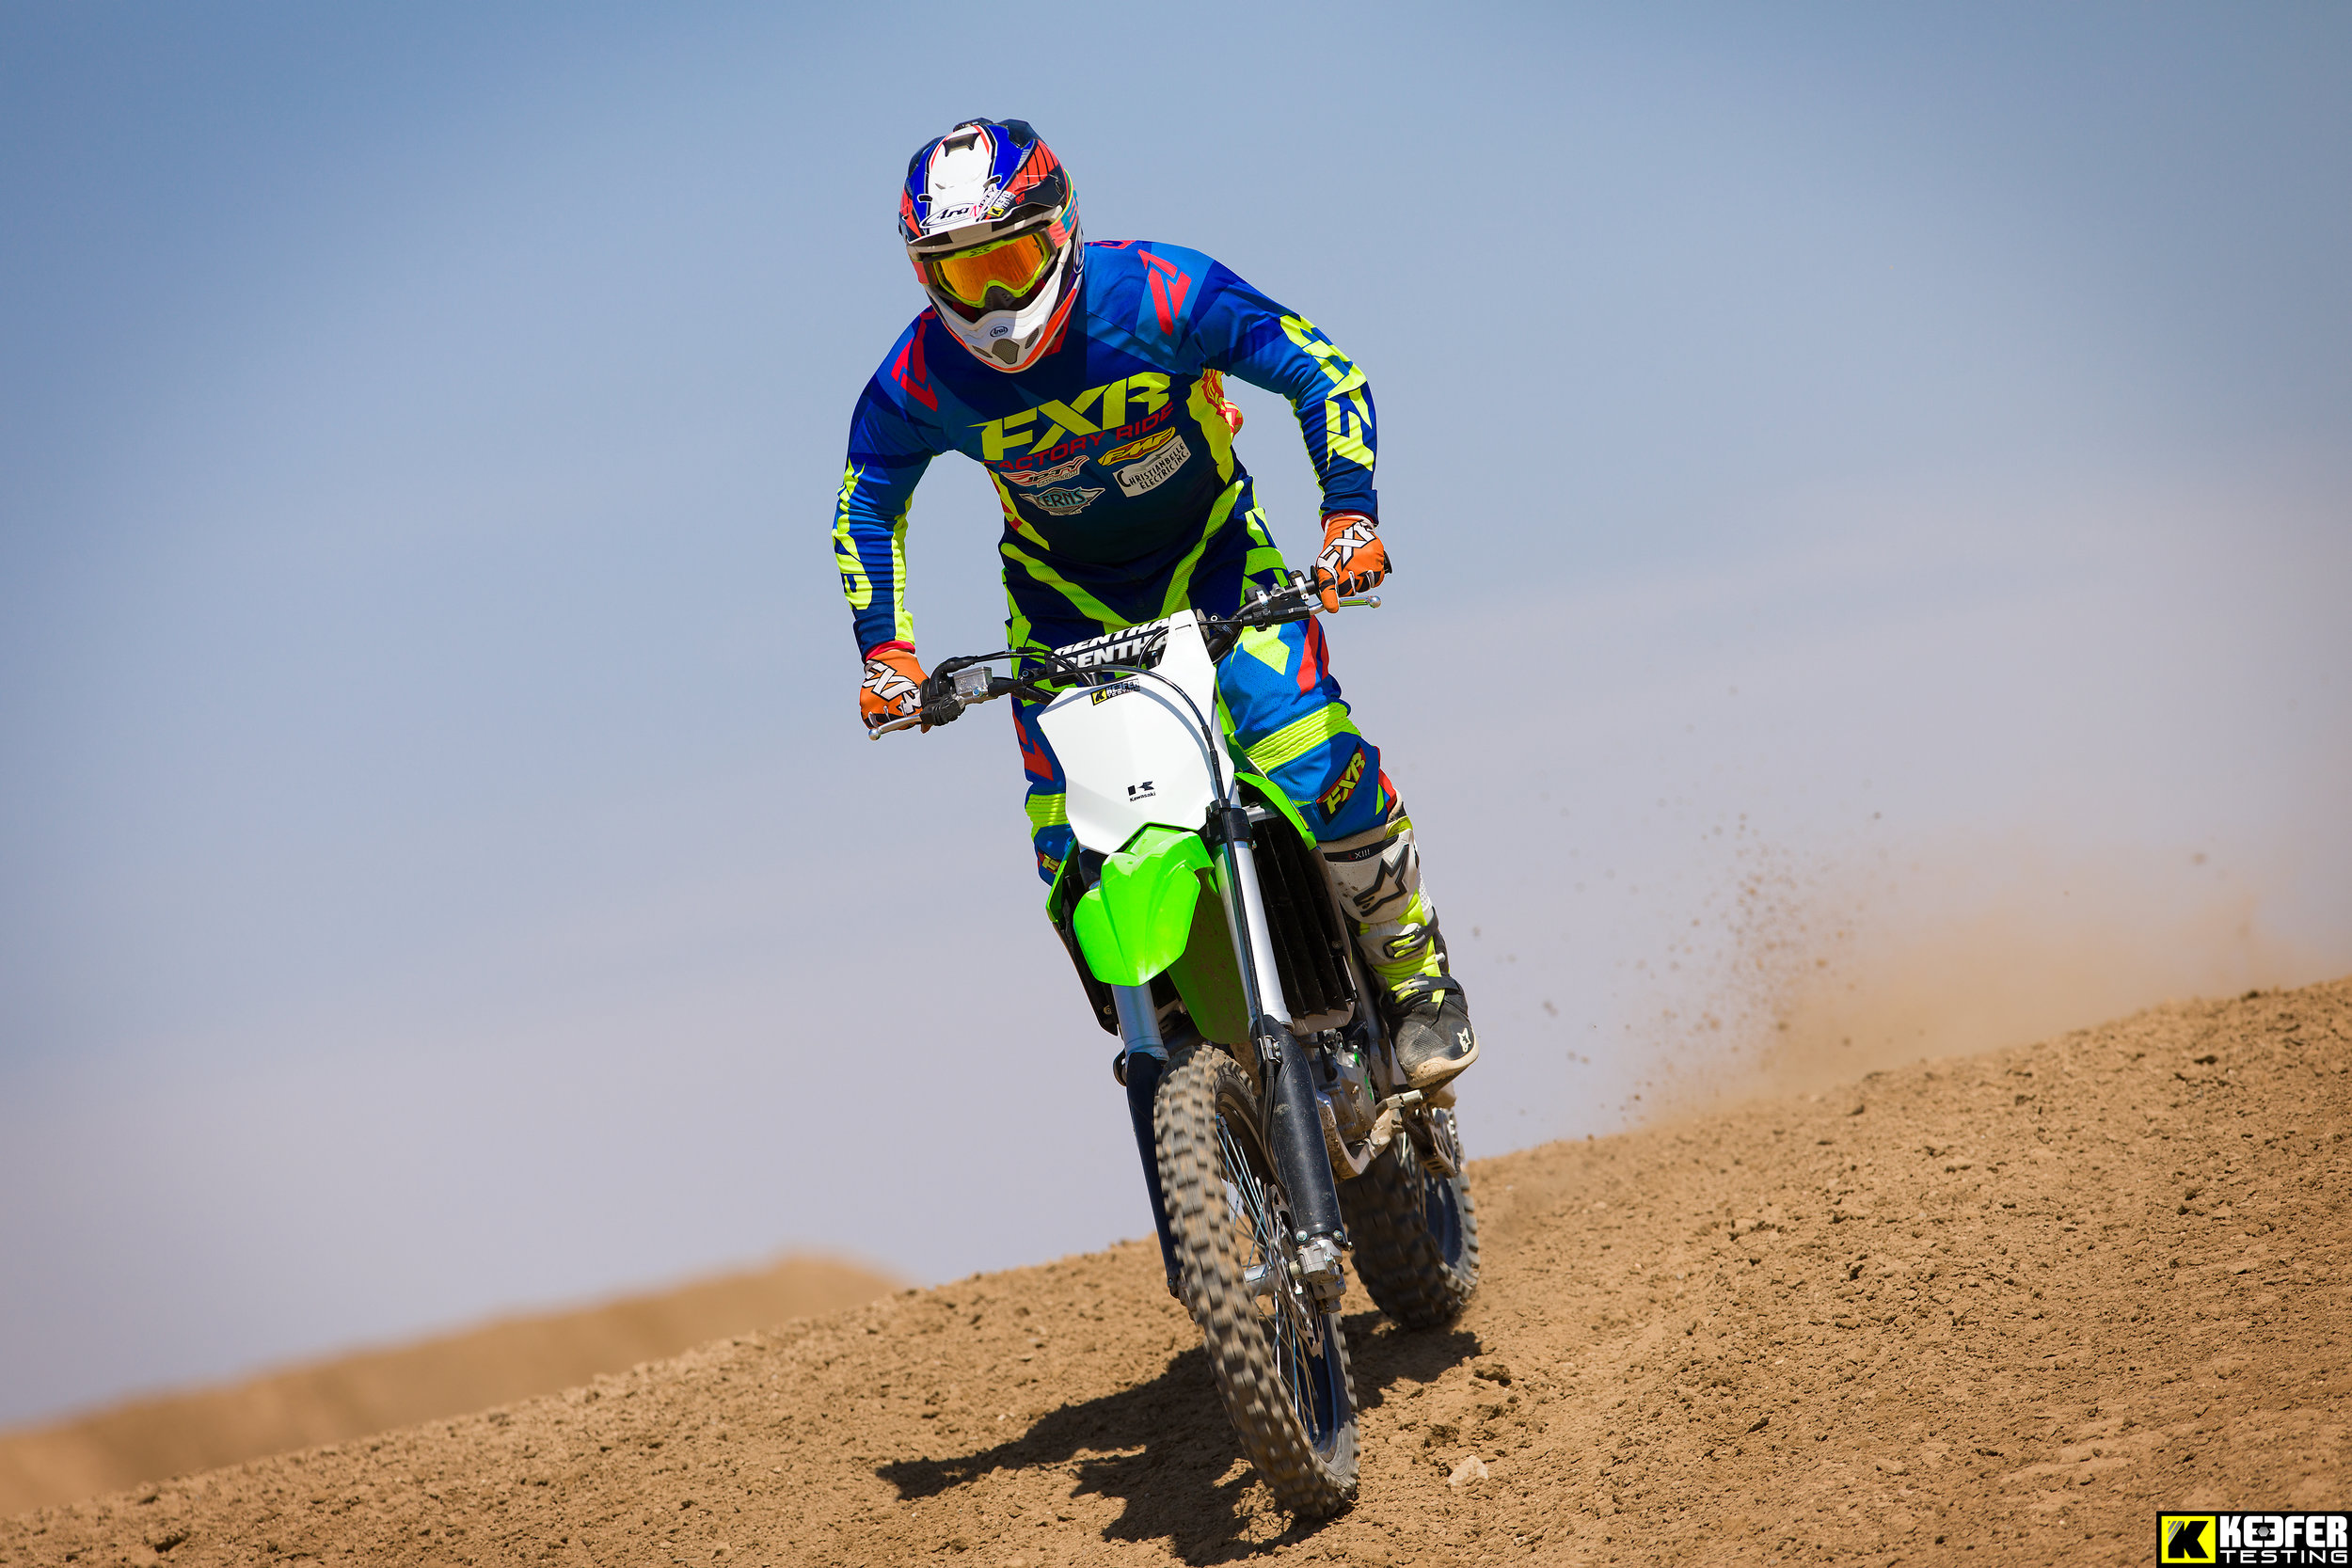 Our novice test rider Matt Sirevaag loved the Kawasaki and its chassis feel.